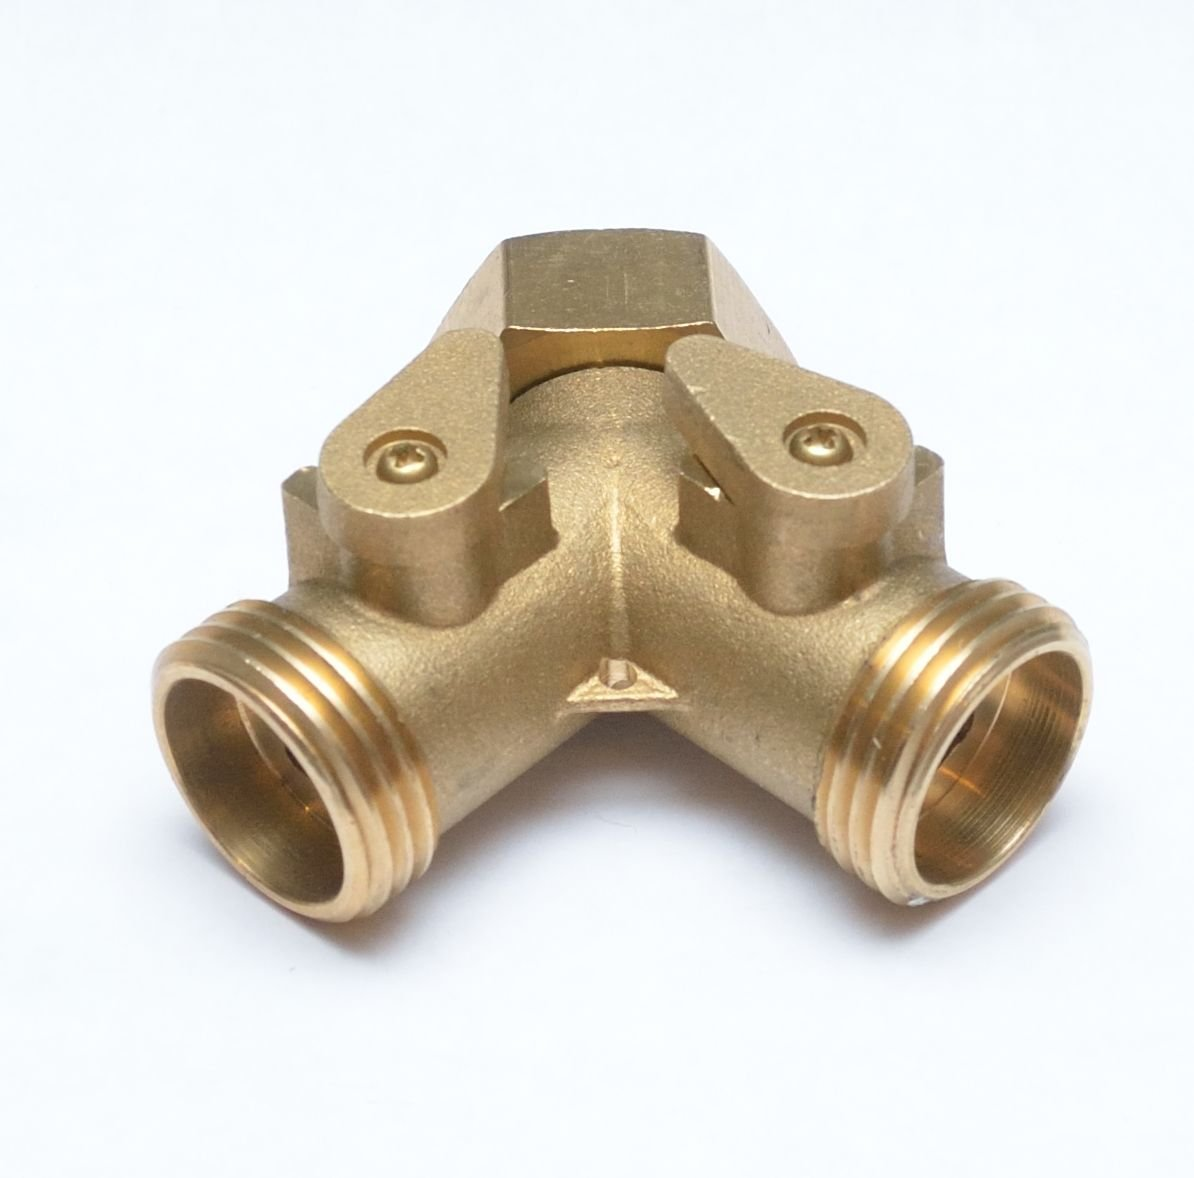 New 3/4'' Female GHT Washing Machine/Laundry Sink Y WYE Water Splitter Valve Pipe Reducer Adaptor Fitting Union POWER Welding Garden Gas Tool